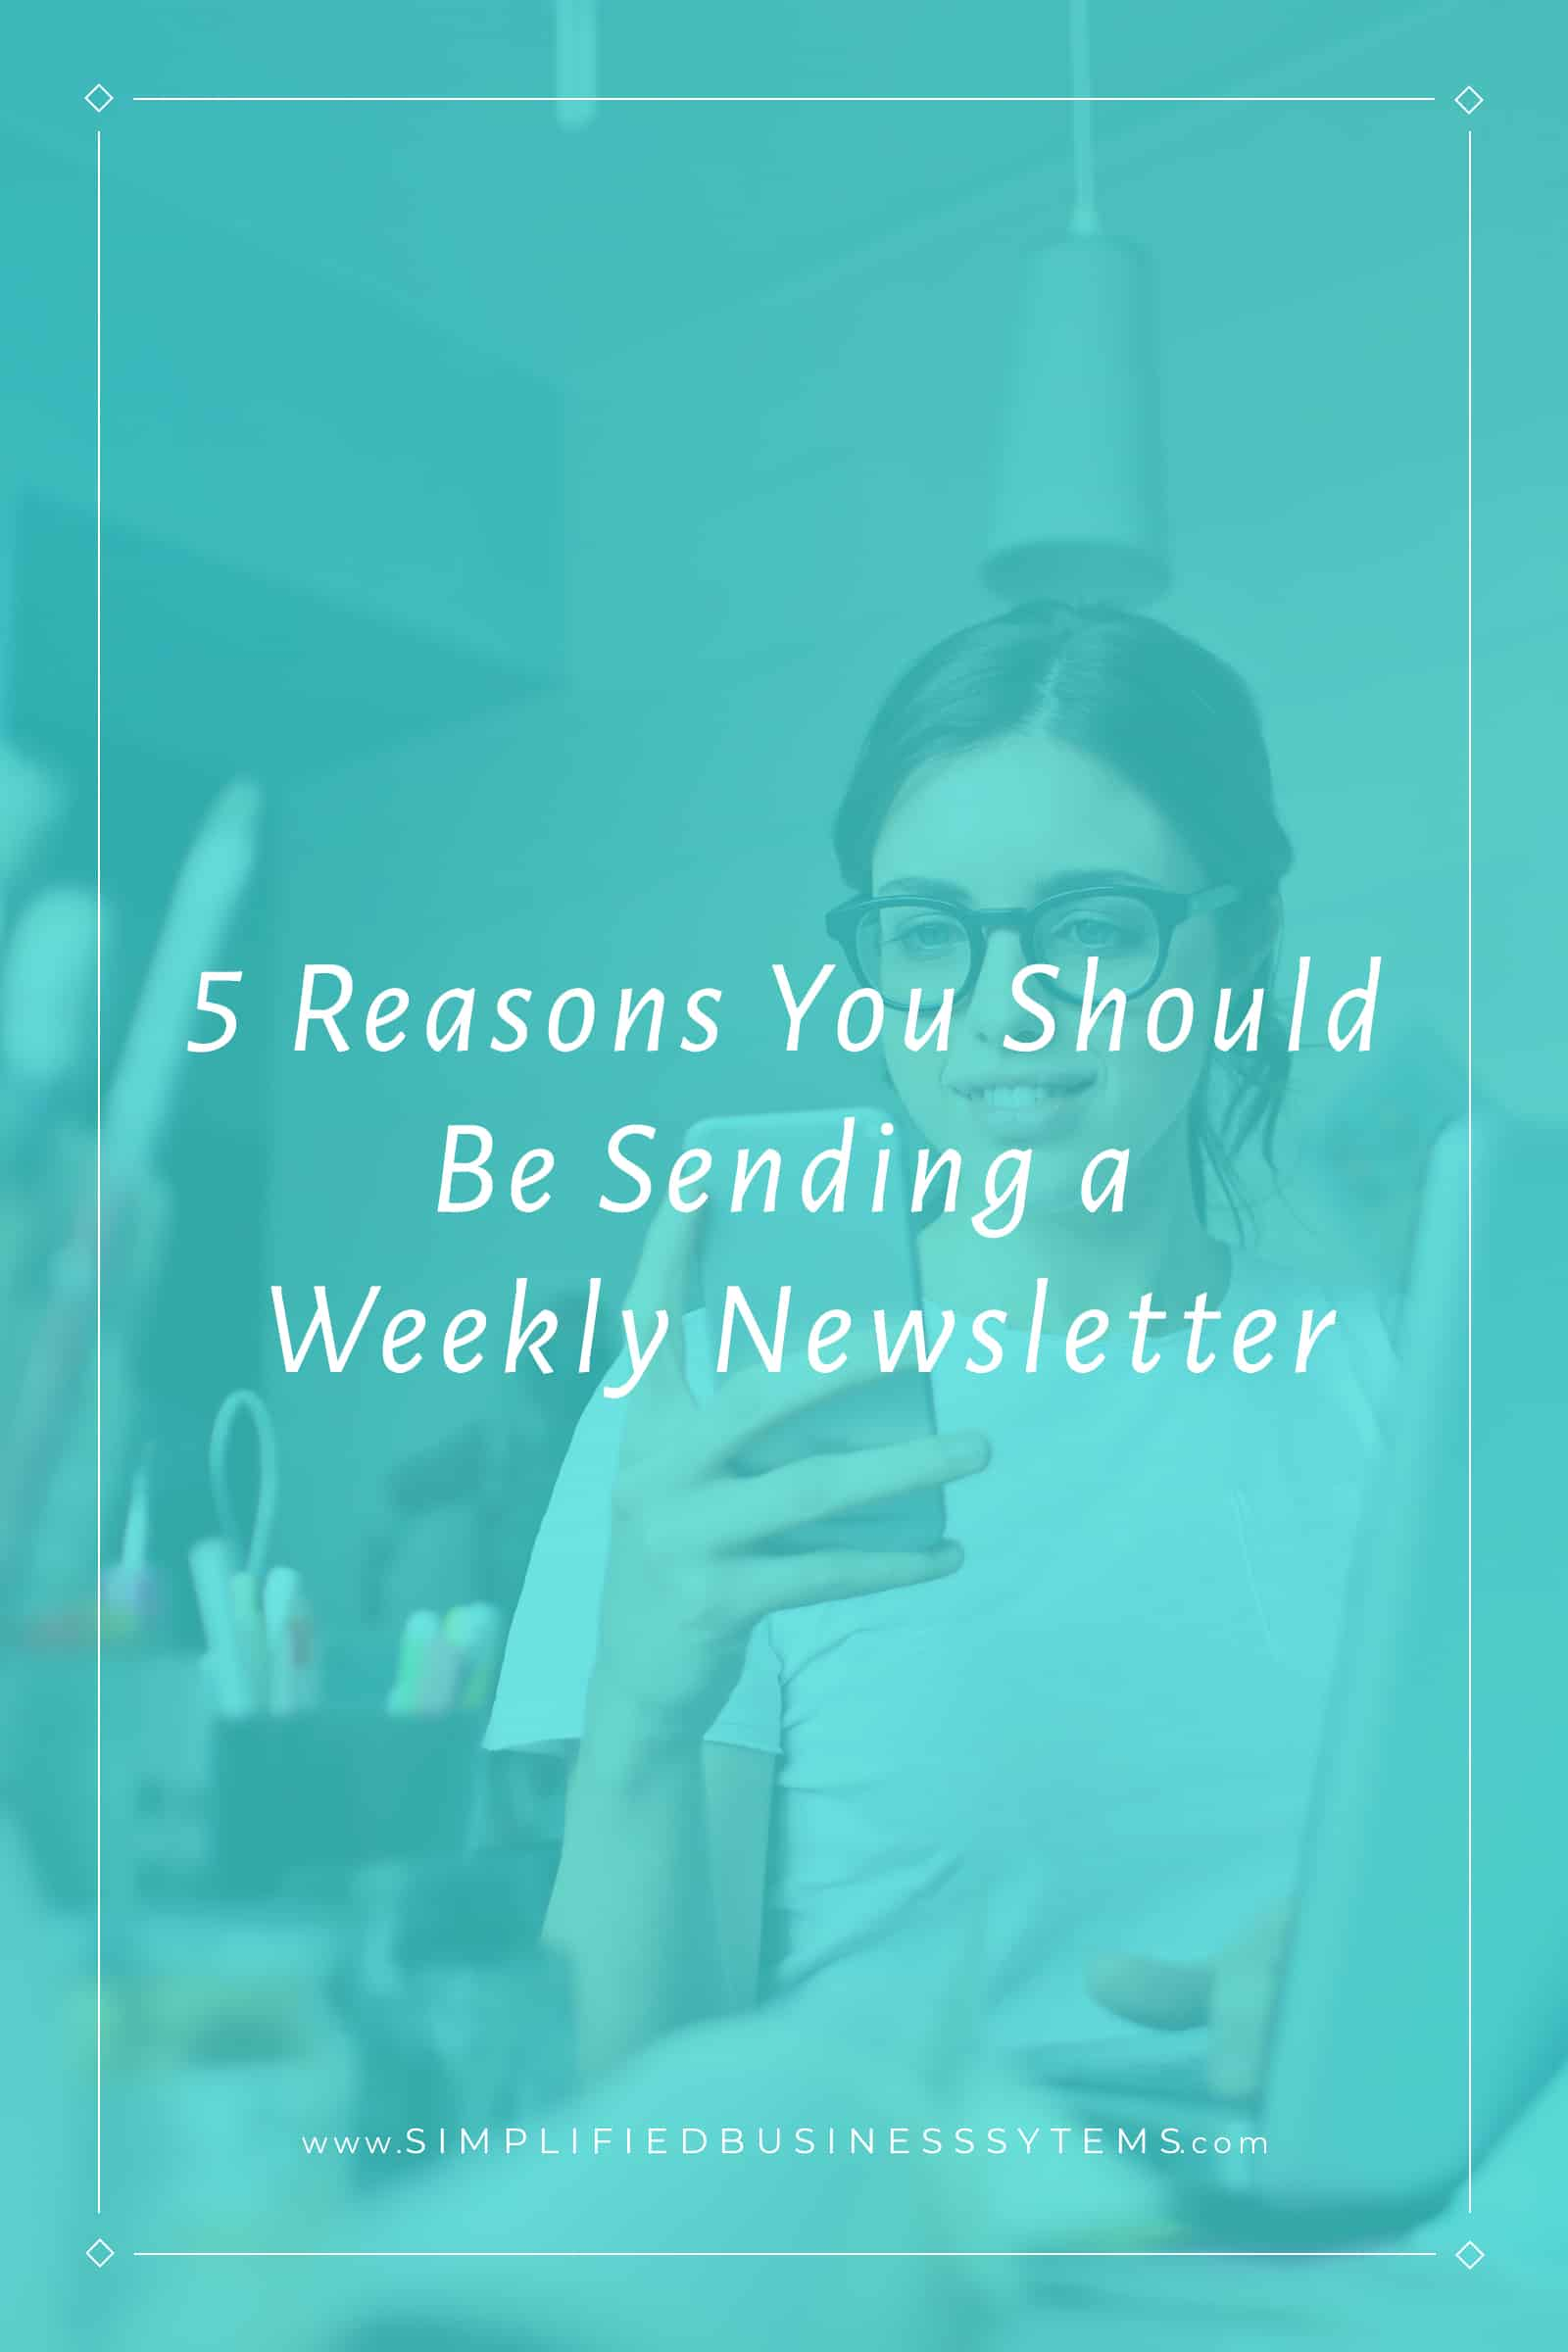 5 Reasons You Should Be Sending a Weekly Newsletter